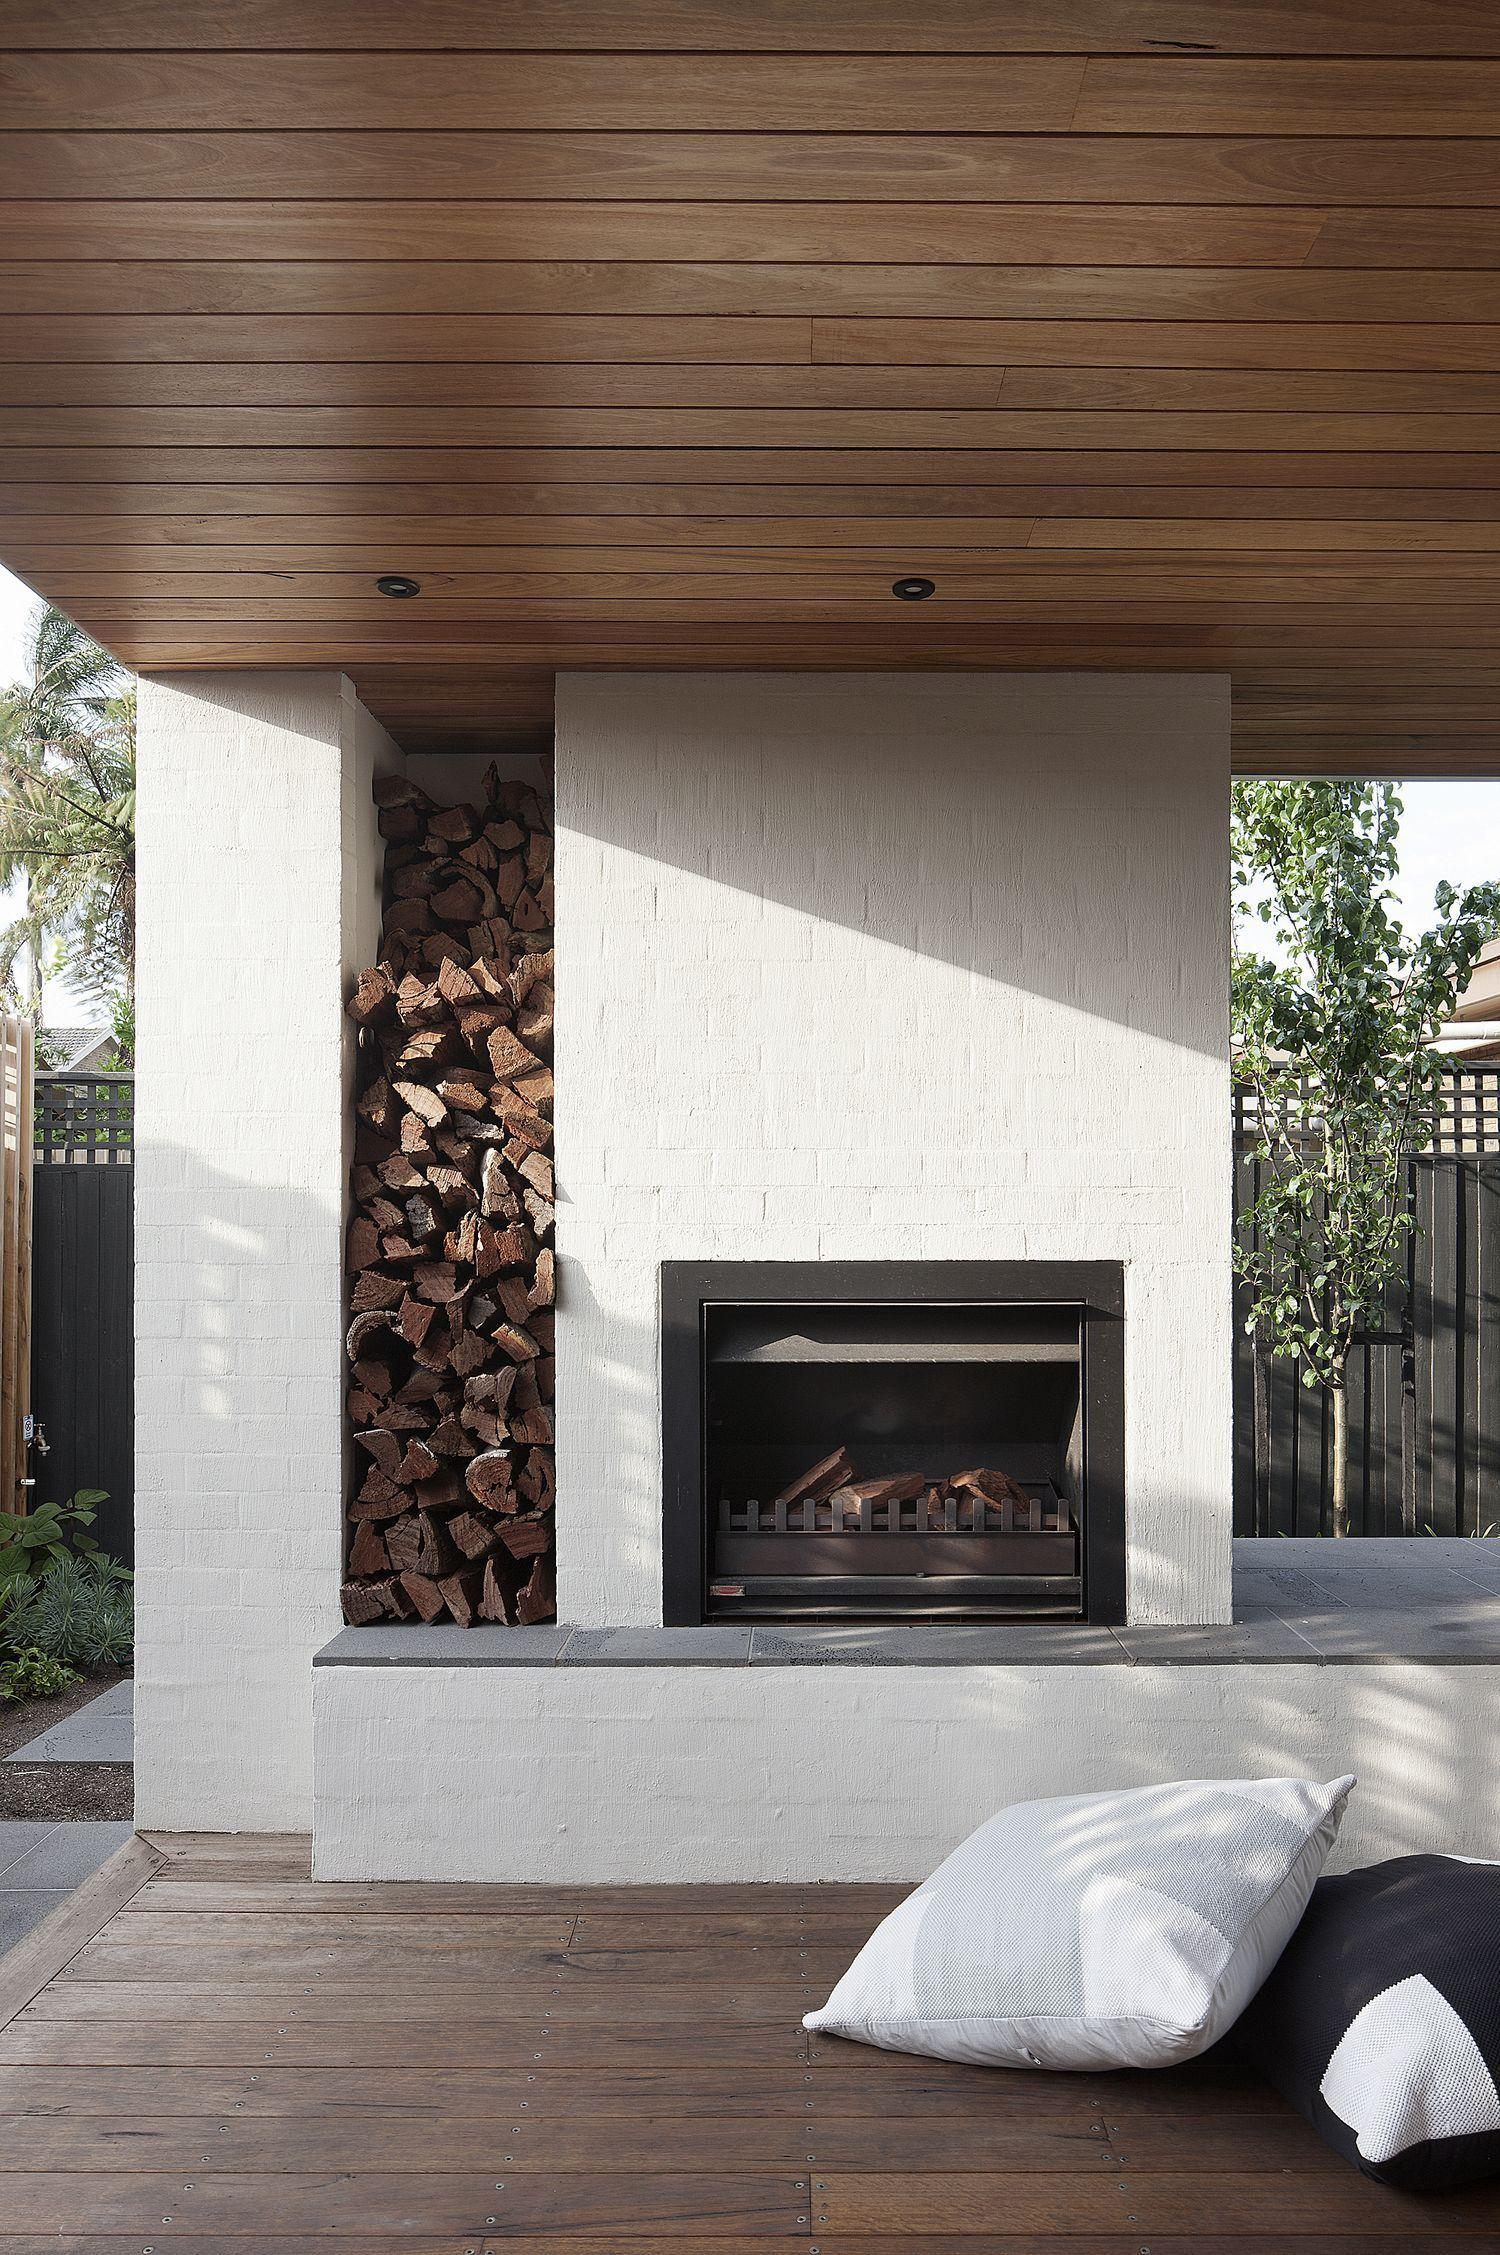 7 Outdoor Kitchen Ideas For The Best Summer Yet Modern Outdoor Fireplace Outdoor Fireplace Designs Outdoor Fireplace